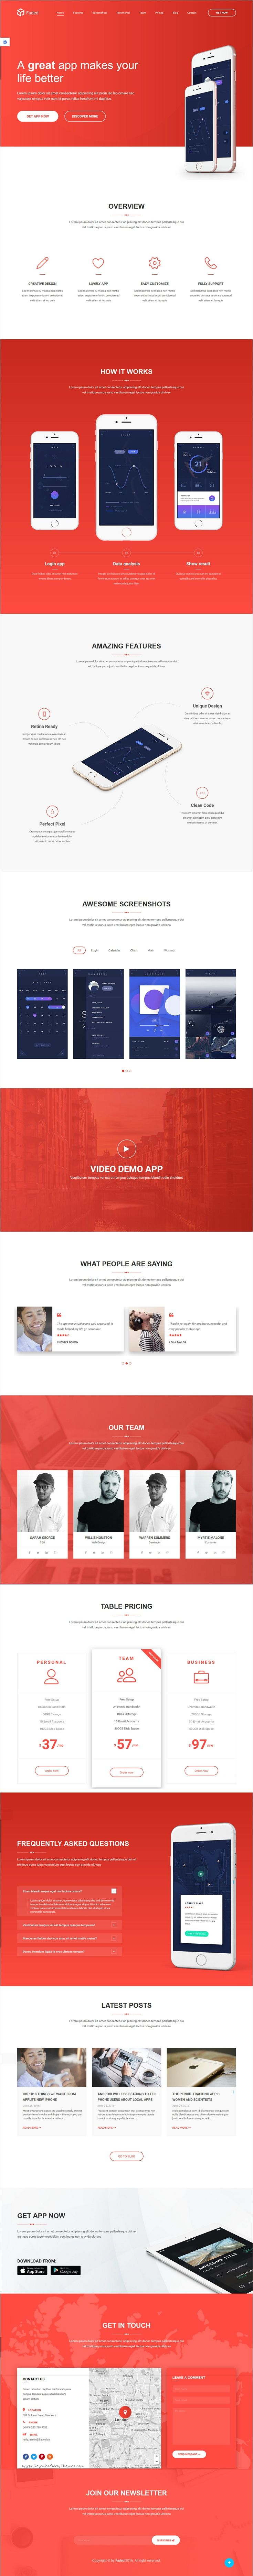 Faded is a clean and modern design #bootstrap template for #startups mobile #apps, saas applications, software, digital products, even books landing page website with blog download now➩ https://themeforest.net/item/faded-app-landing-page-template-with-blog/18402869?ref=Datasata